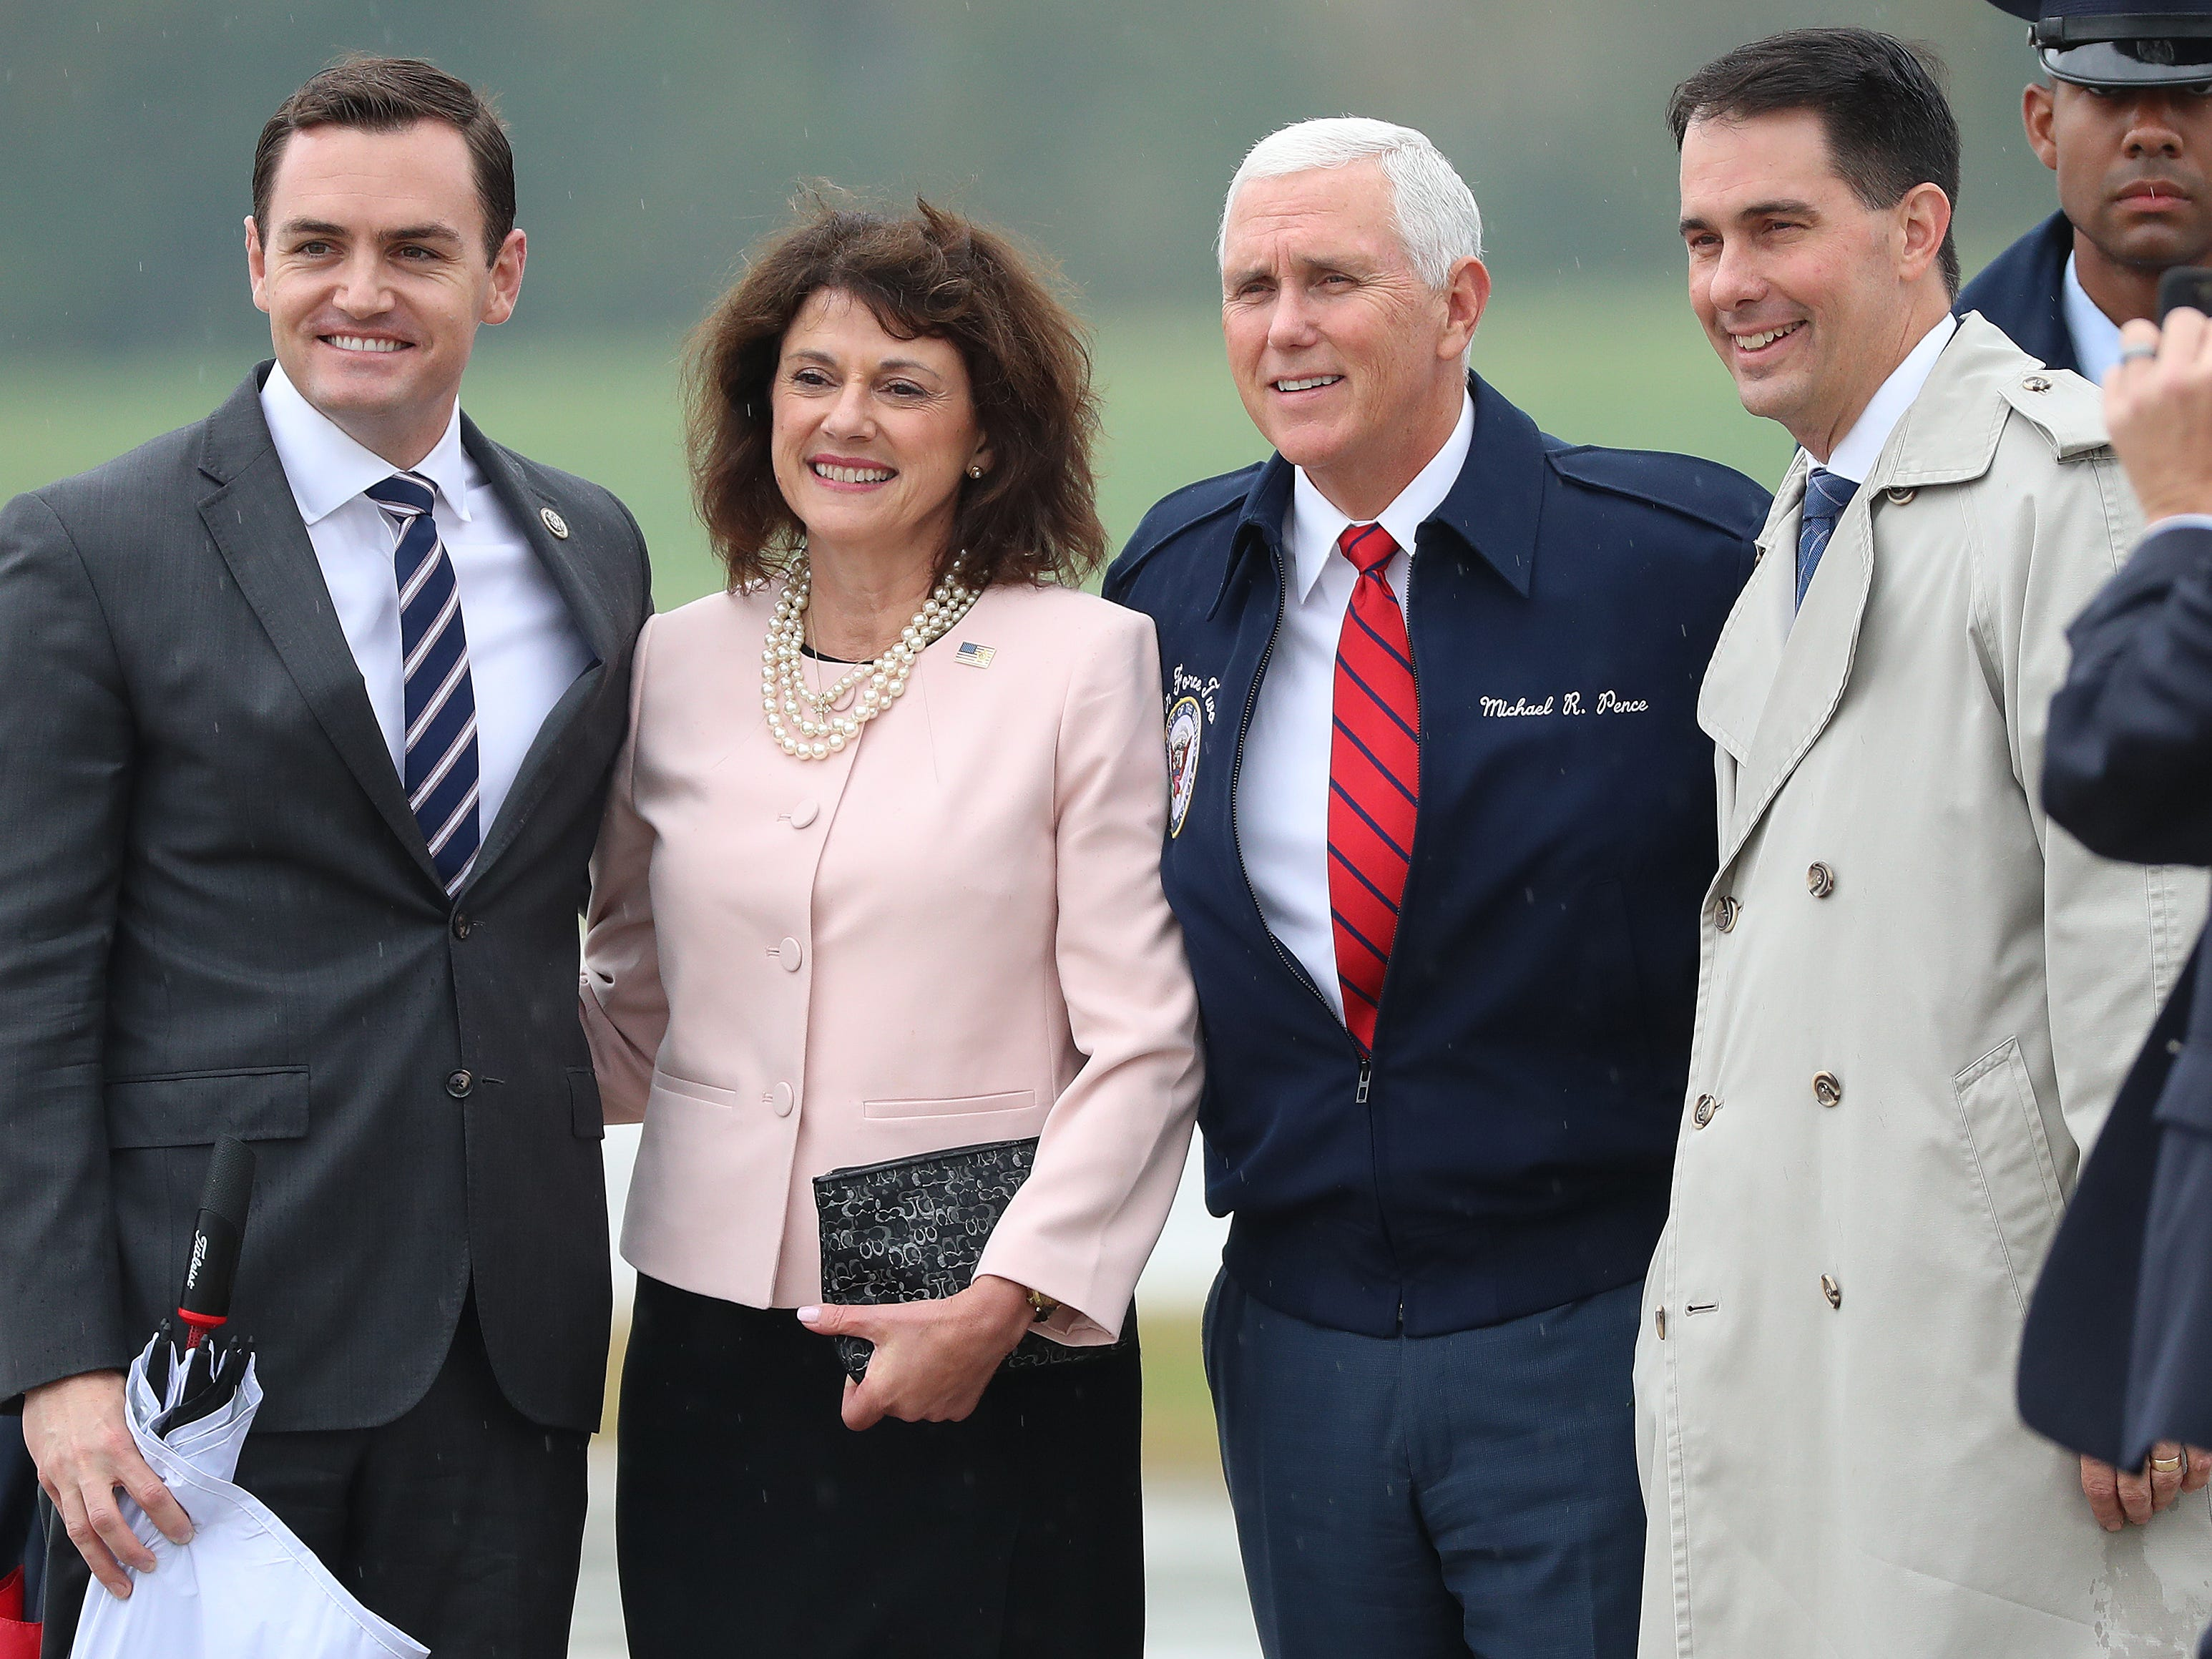 Vice President Mike Pence poses for a photo at Green Bay Austin Straubel International Airport with U.S. Rep. Mike Gallagher (left), Senate candidate Leah Vukmir and Gov. Scott Walker on Oct.  10.